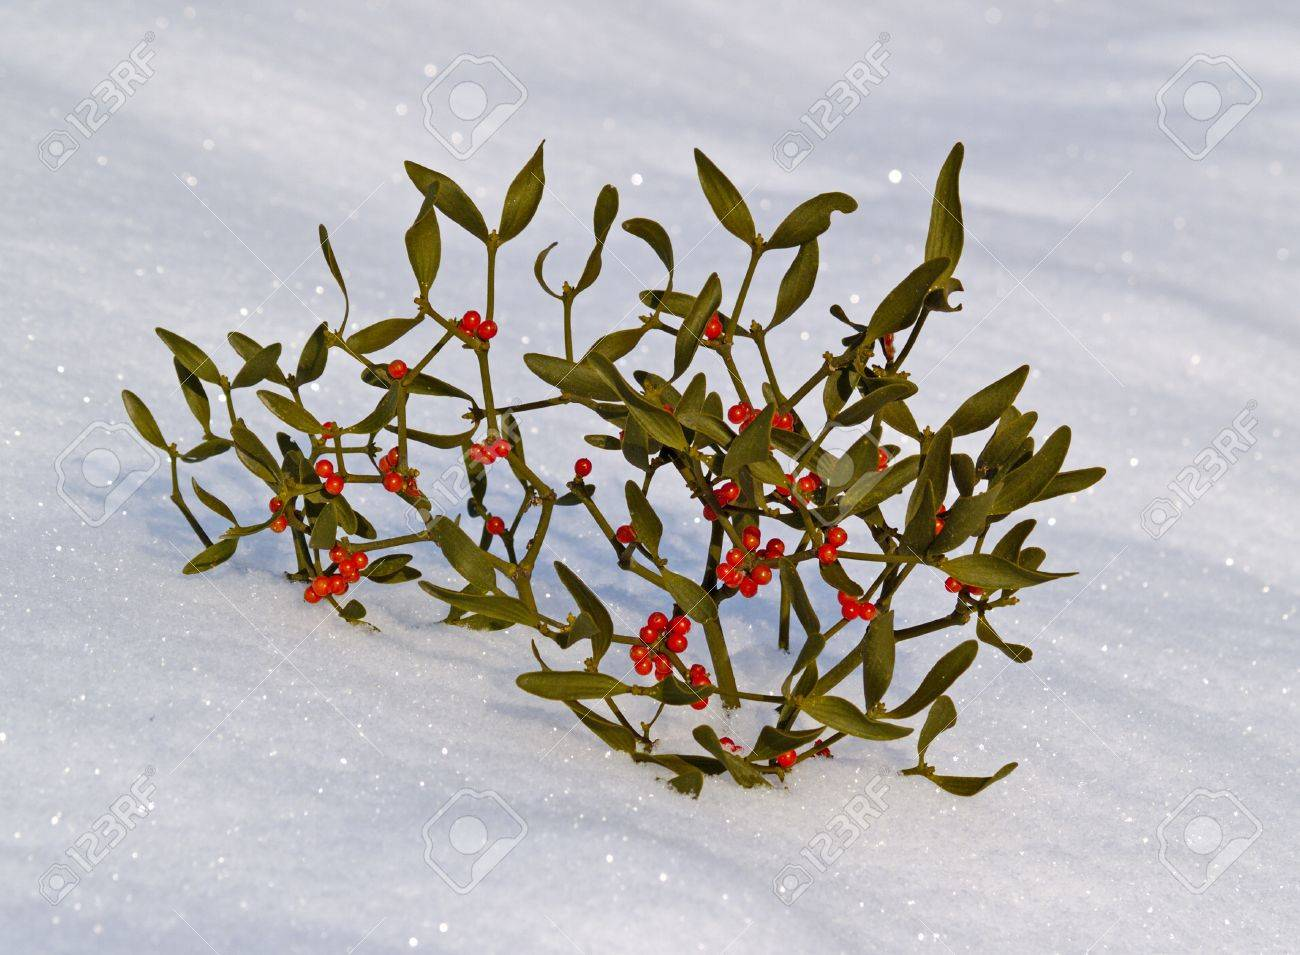 Branch Of A Mistletoe With Red Berries On Snow Stock Photo